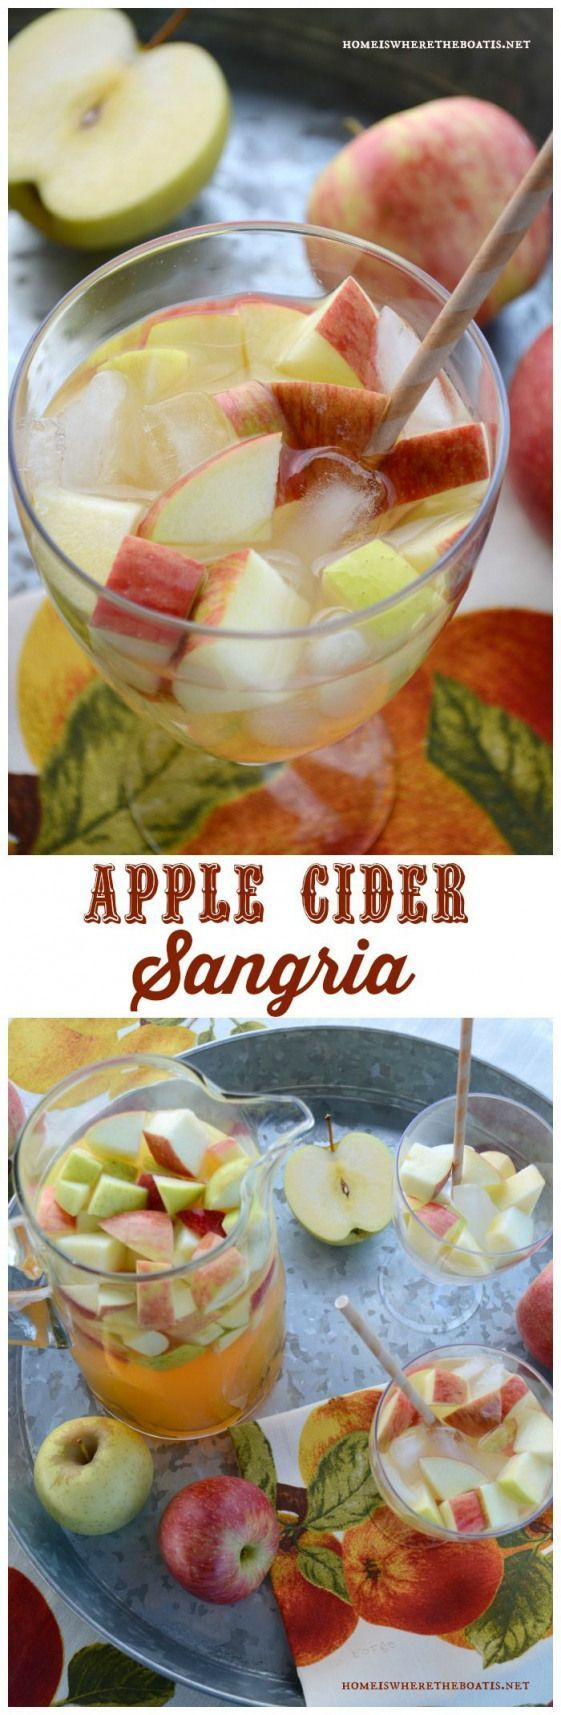 #Apple #cider #combination #Fall #Infused #Refreshing #Sangria Apple Cider Sangria! A refreshing sangria for fall infused with a combination of...        Apple Cider Sangria! A refreshing sangria for fall infused with a combination of apple and ginger! Ideal for tailgating or sipping in celebration of cider season! | homeiswheretheboa... #fall #apple #easy #applecidersangriarecipe #Apple #cider #combination #Fall #Infused #Refreshing #Sangria Apple Cider Sangria! A refreshing sangria for fall in #applecidersangriarecipe